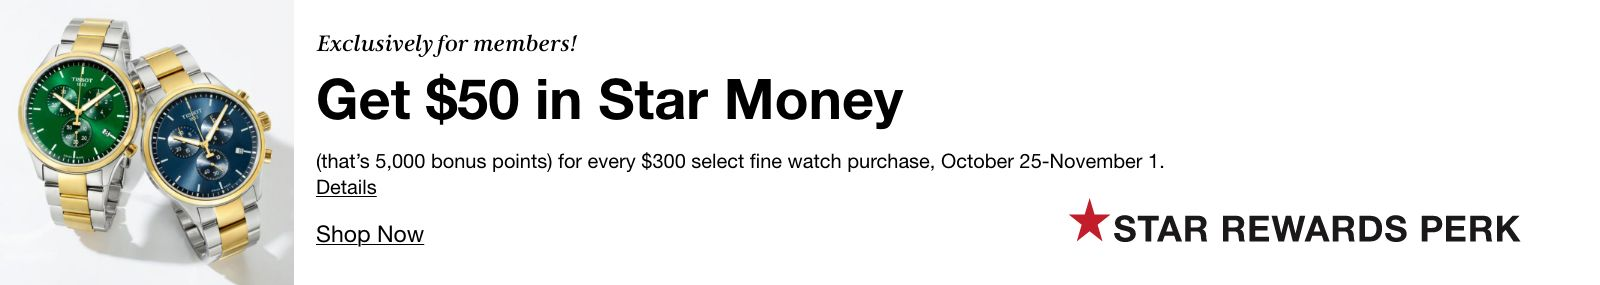 Exclusively for members! Get $50 in Star Money (that's 5,000 bonus points) for every $300 select fine watch purchase, October 25-November 1